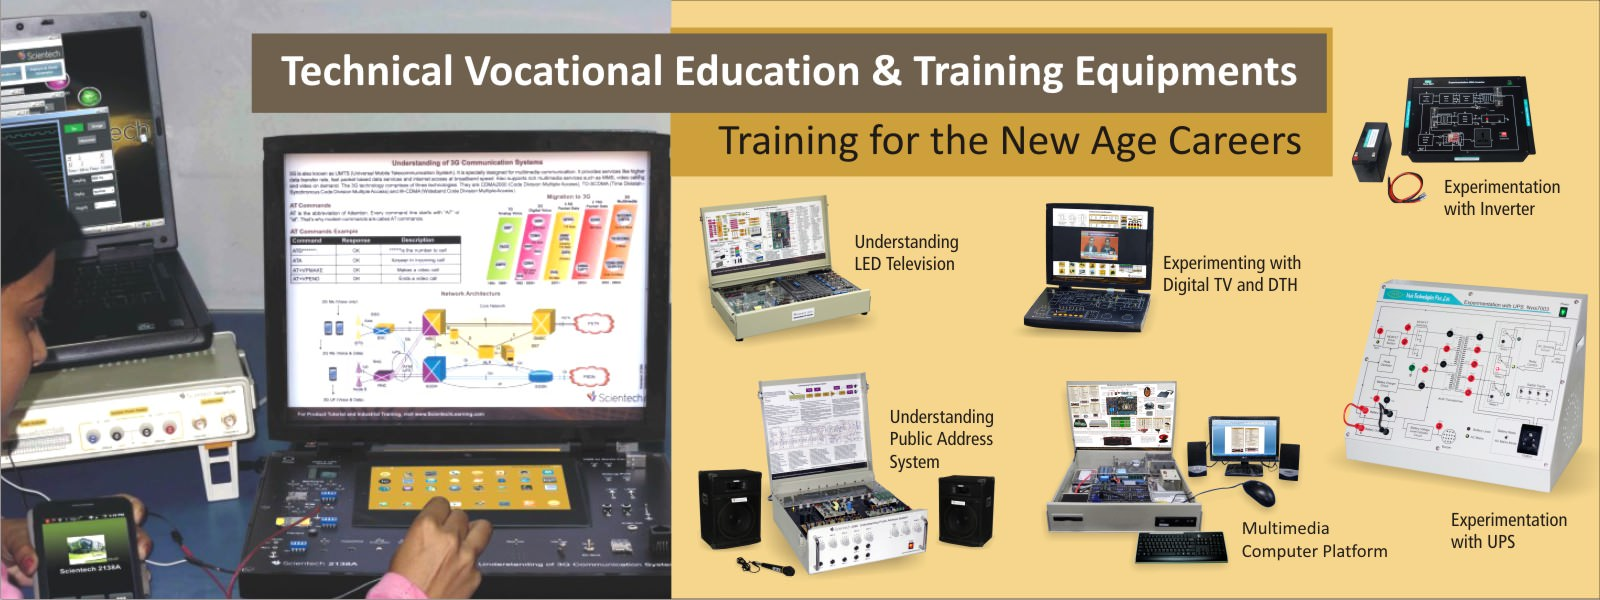 Technical, Vocational, Education and Training Equipments